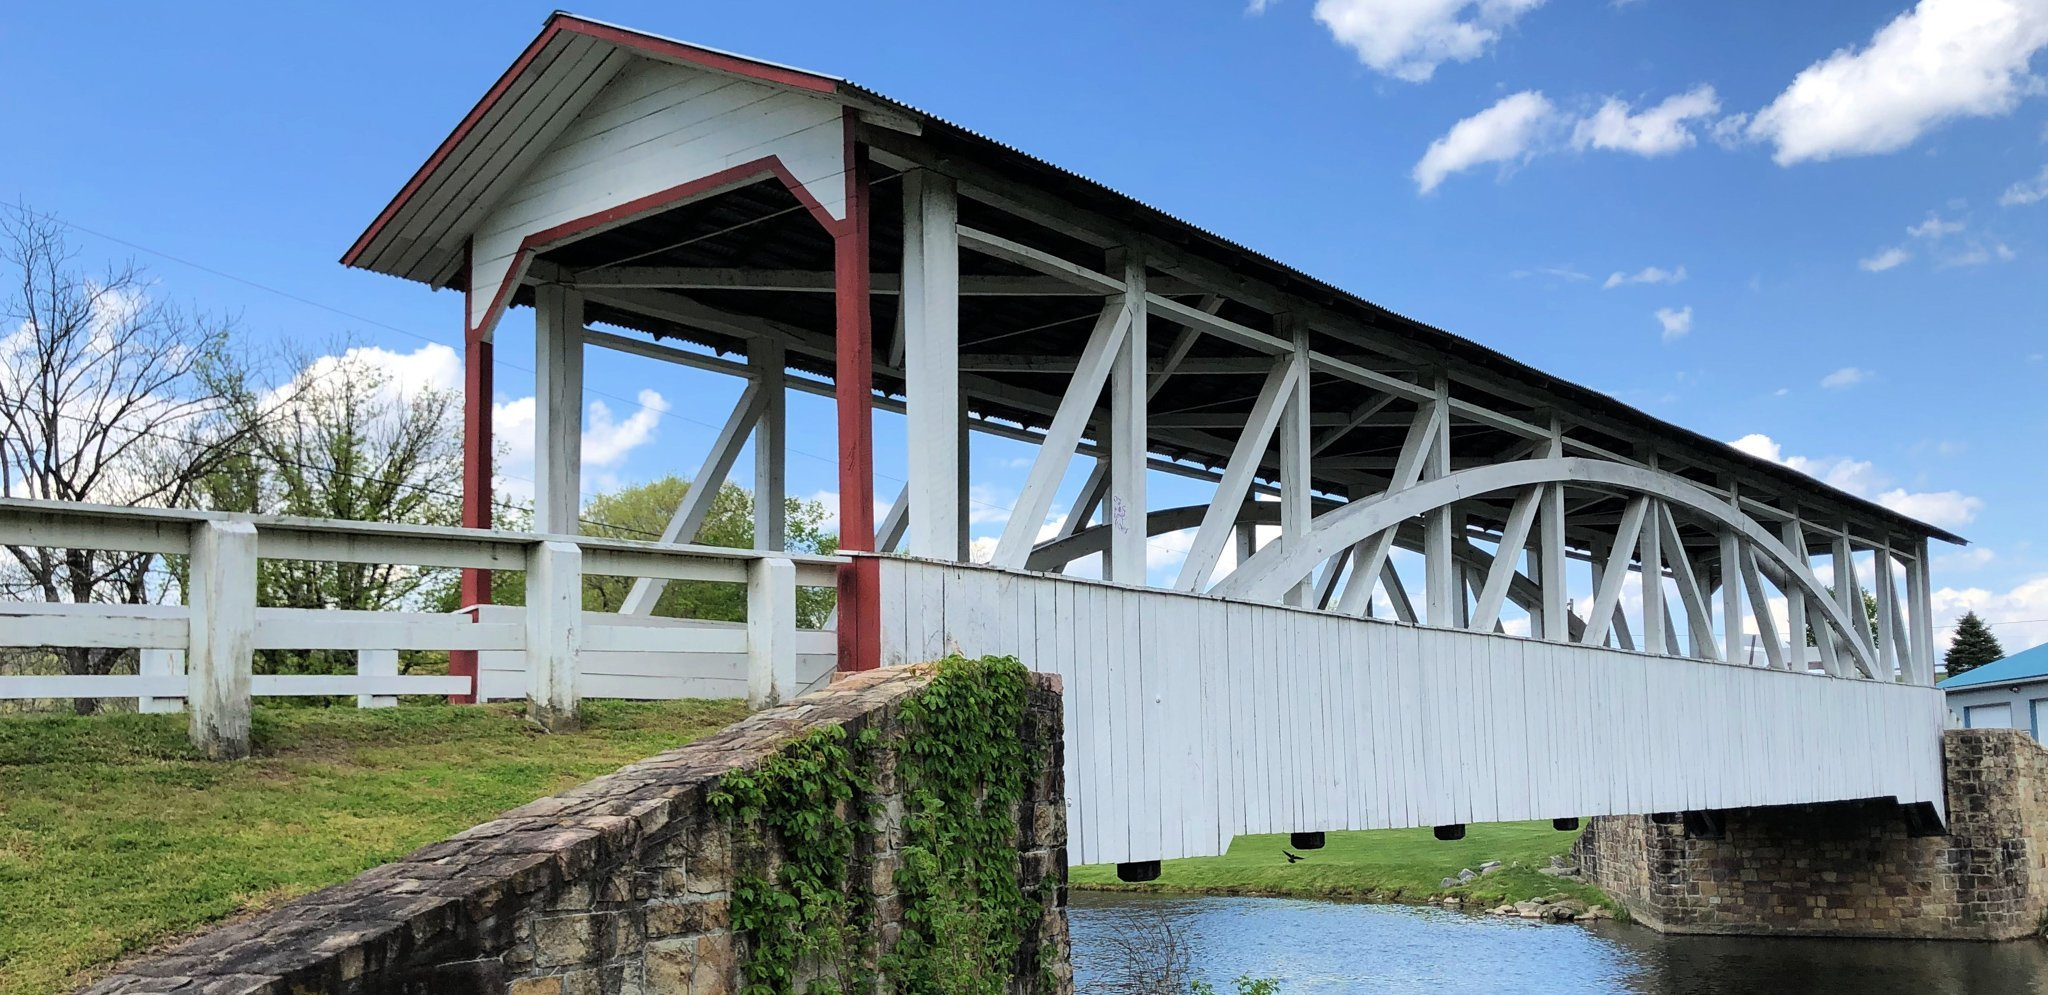 Bedford, Pennsylvania: How To Spend An Amazing Weekend In This Historic Town